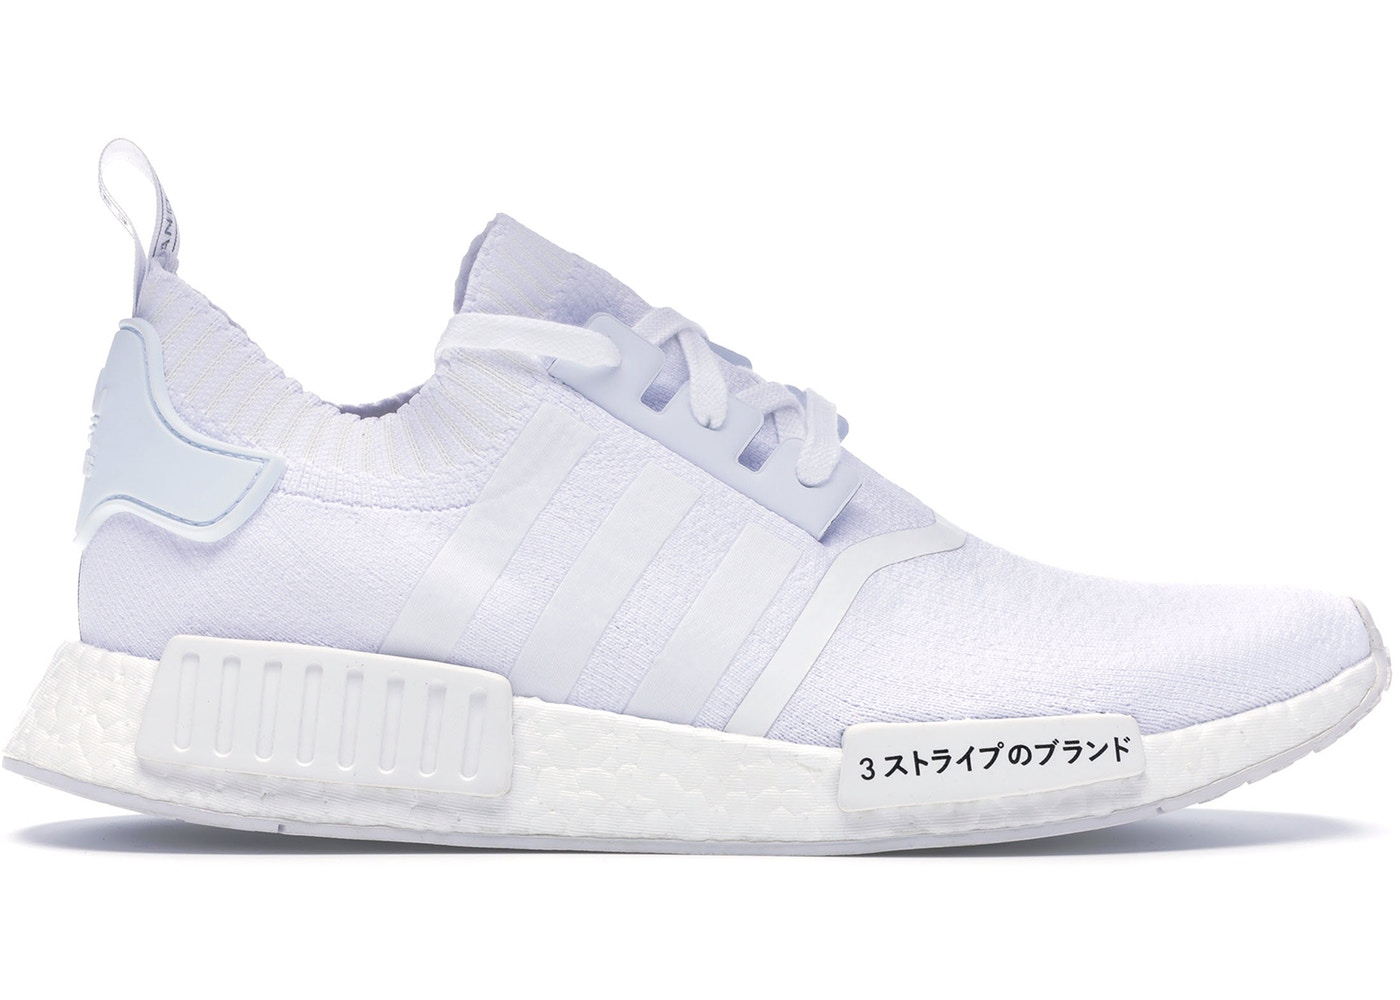 pretty nice cde52 58dbf adidas NMD R1 Japan Triple White